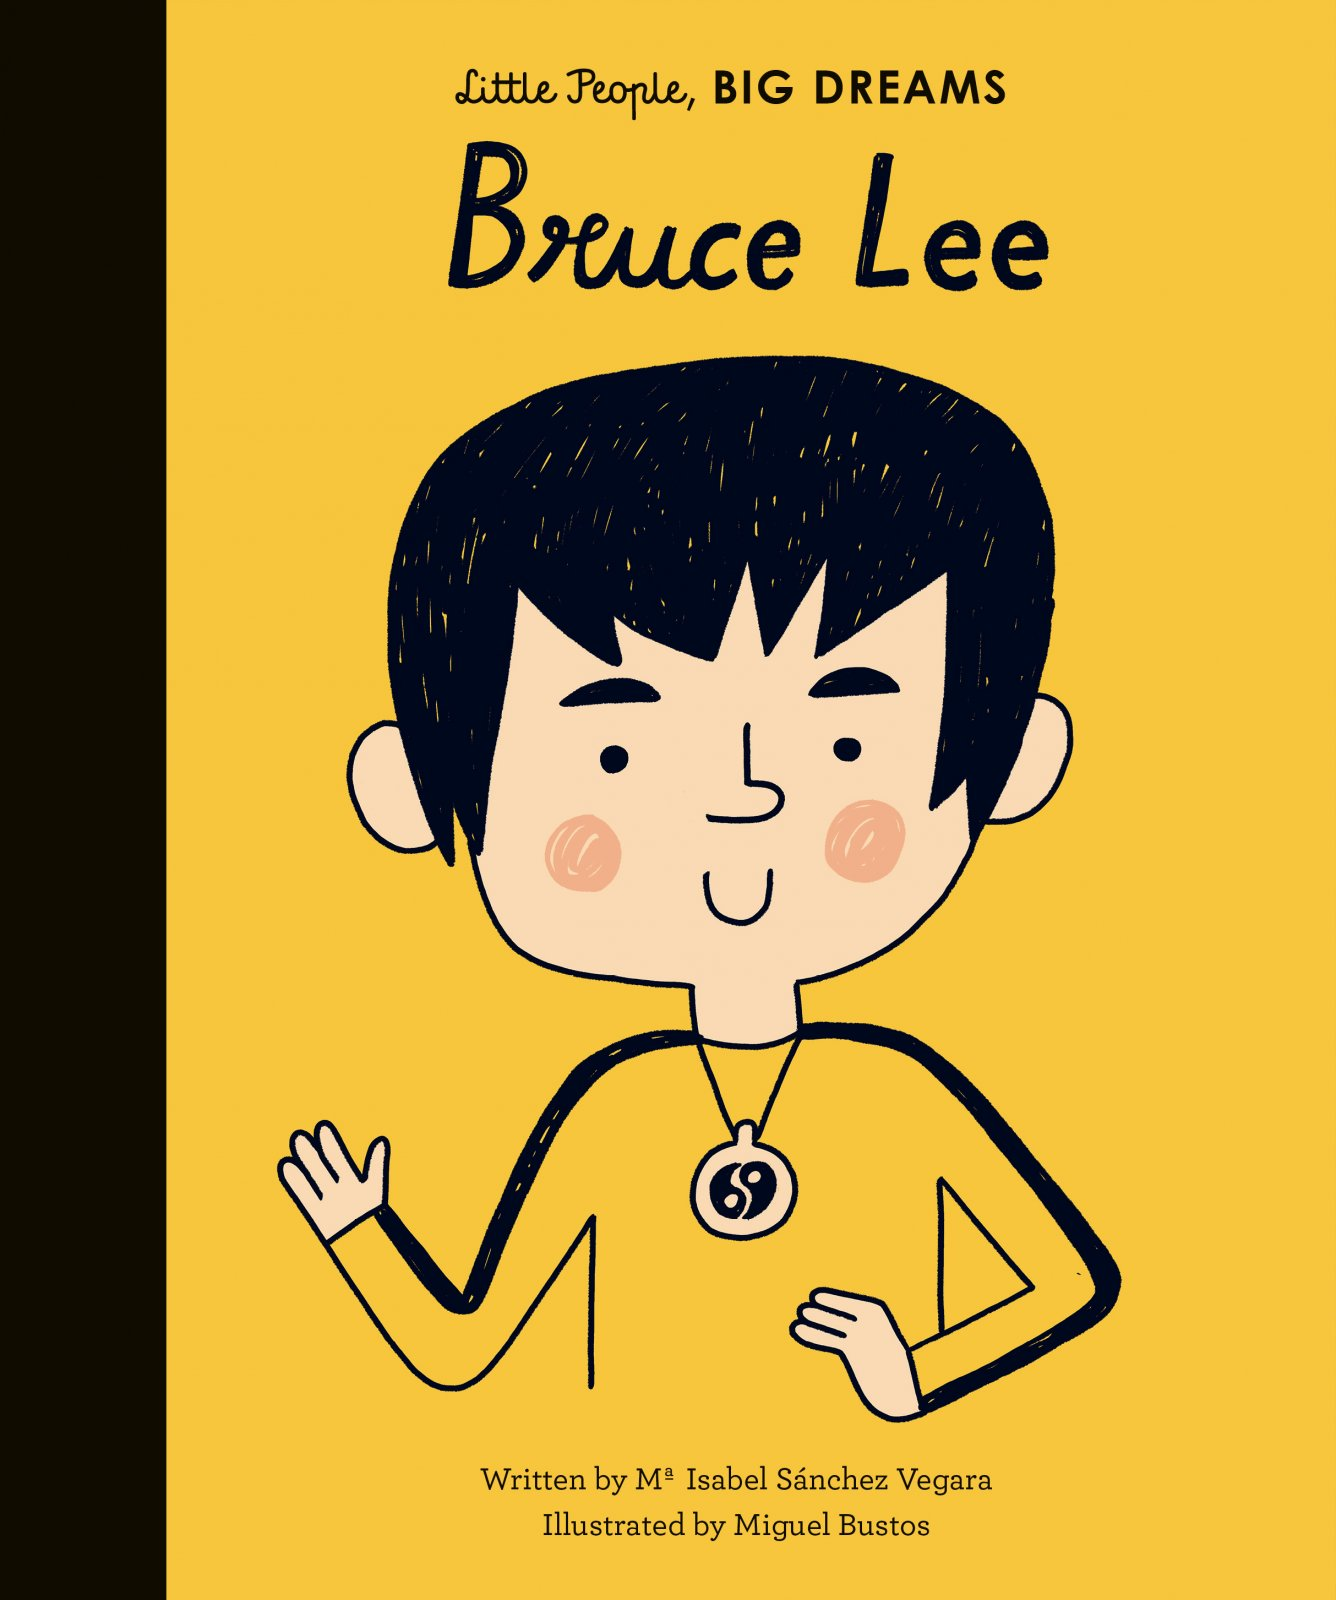 Little People, Big Dreams: Bruce Lee by Ma Isabel Sanchez Vegara